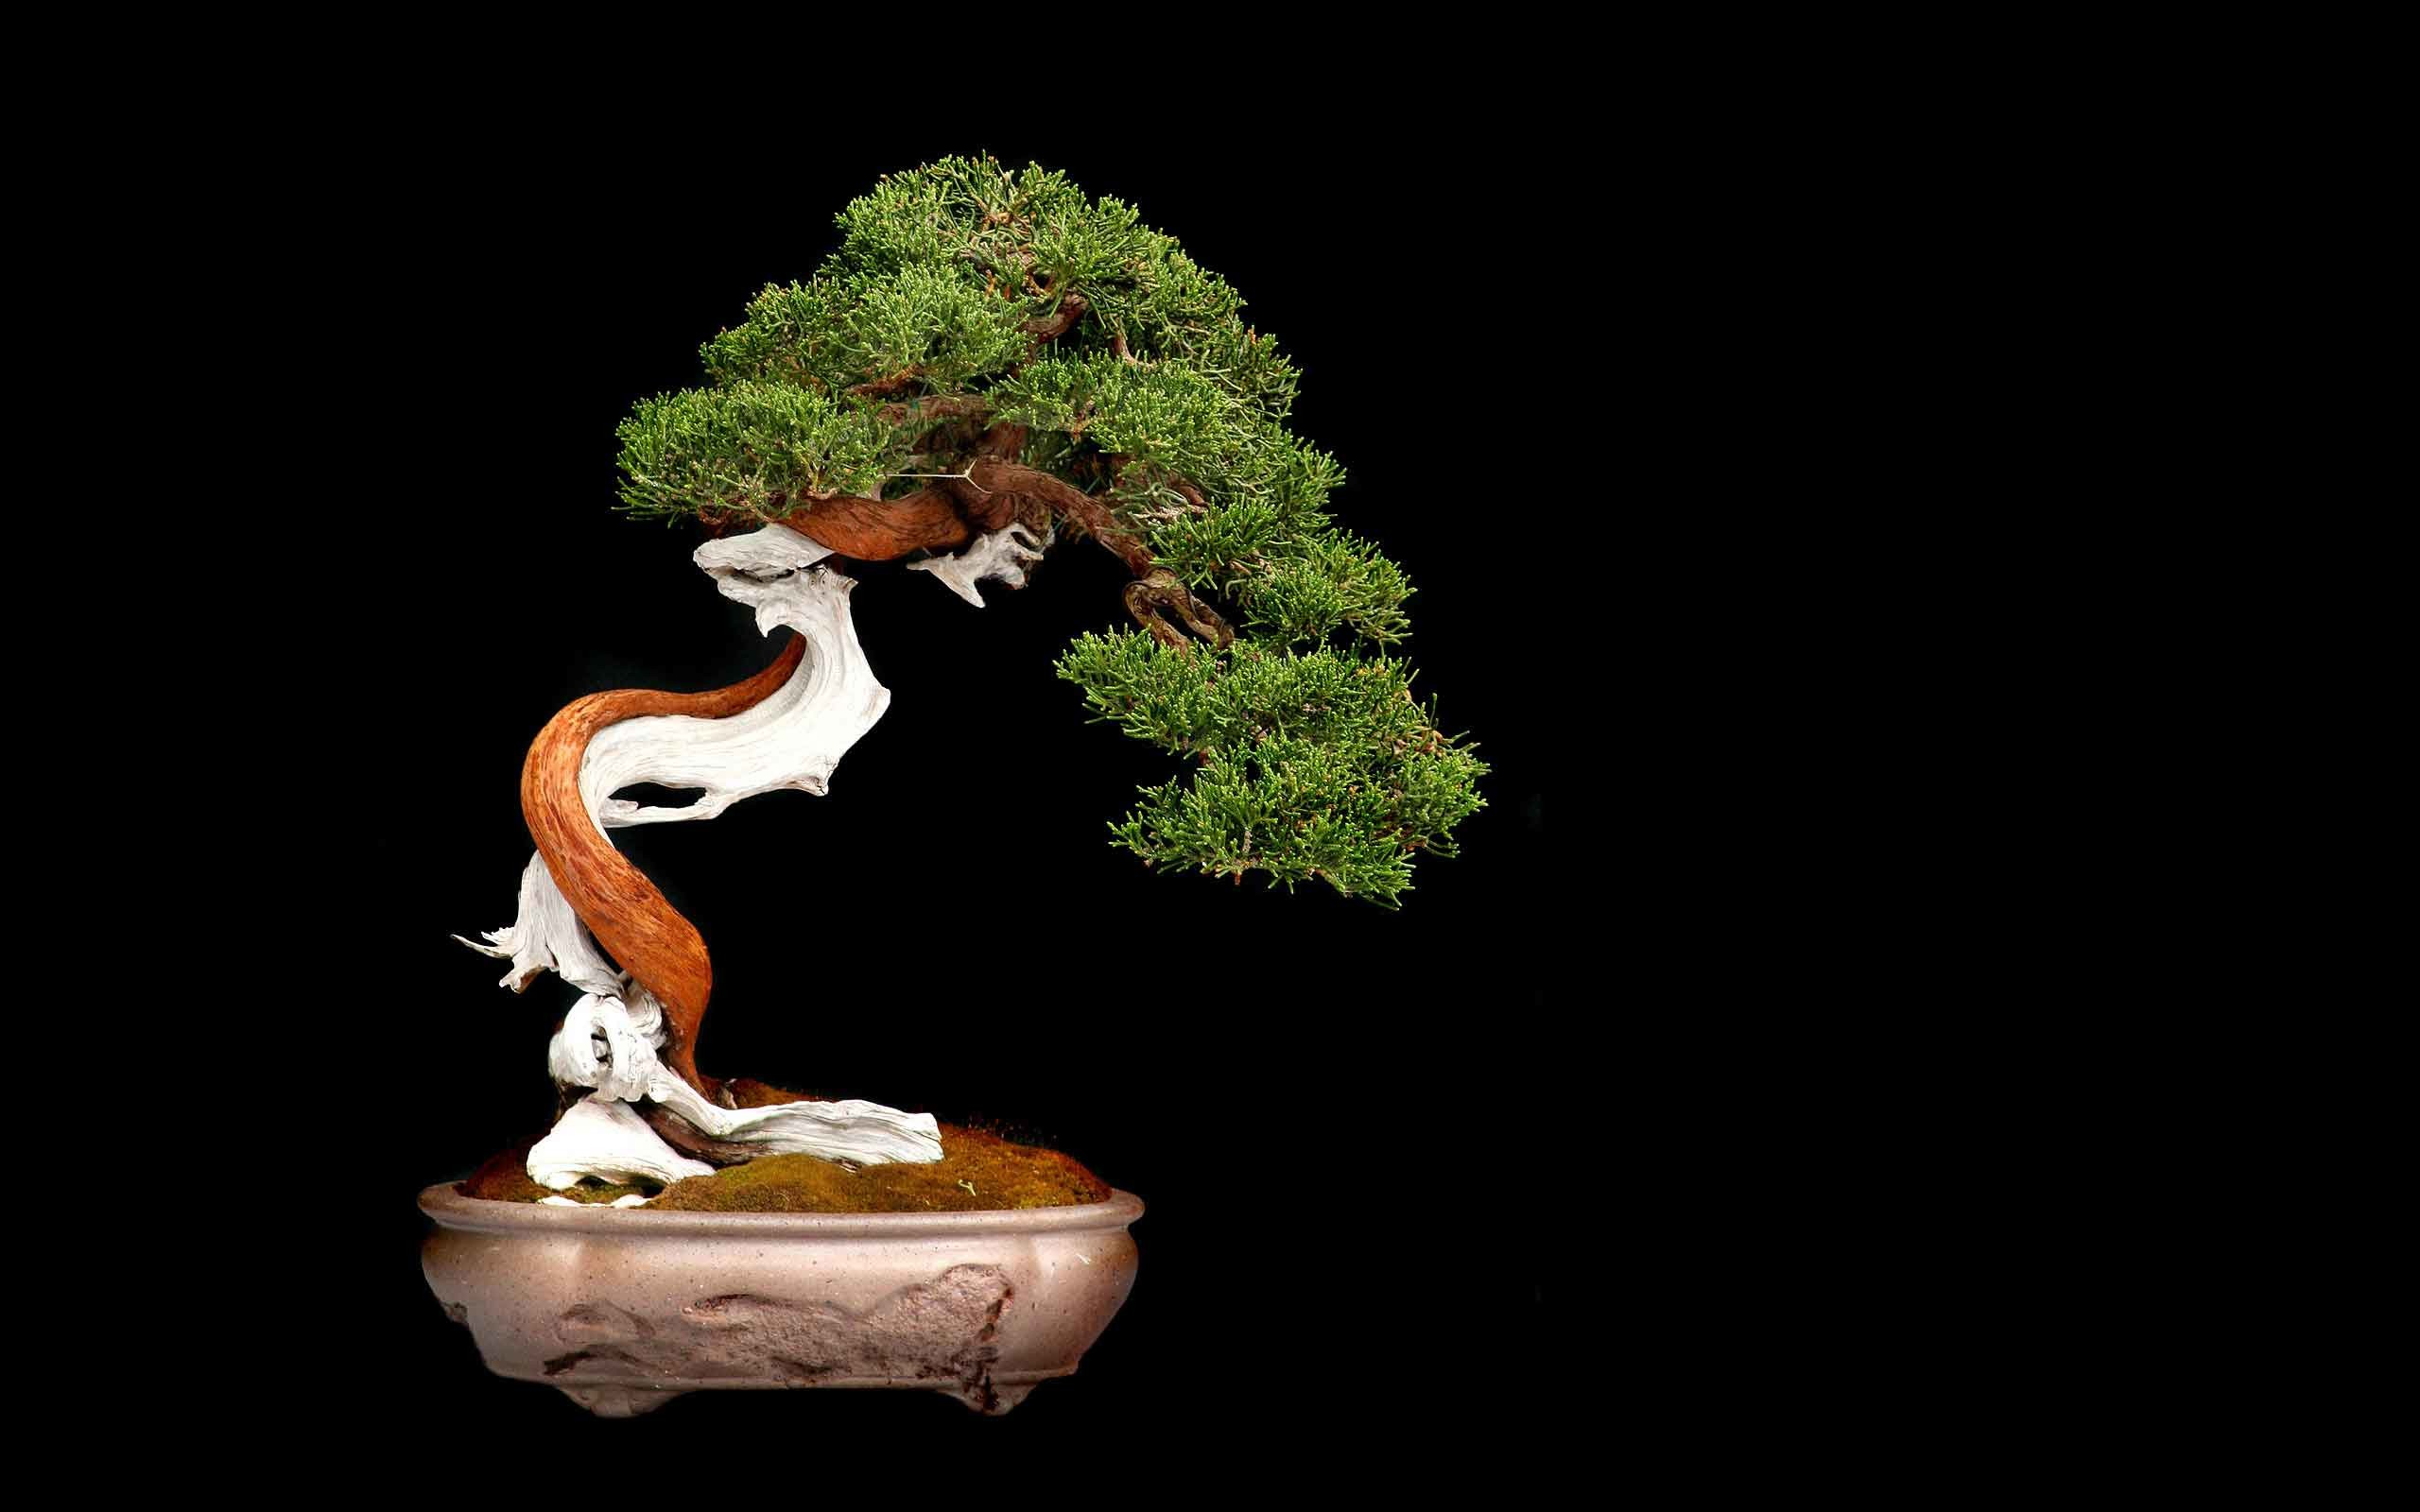 2560x1600 Trees Tree Leaves Bonsai HD Nature Wallpapers For Windows 7 Free Download